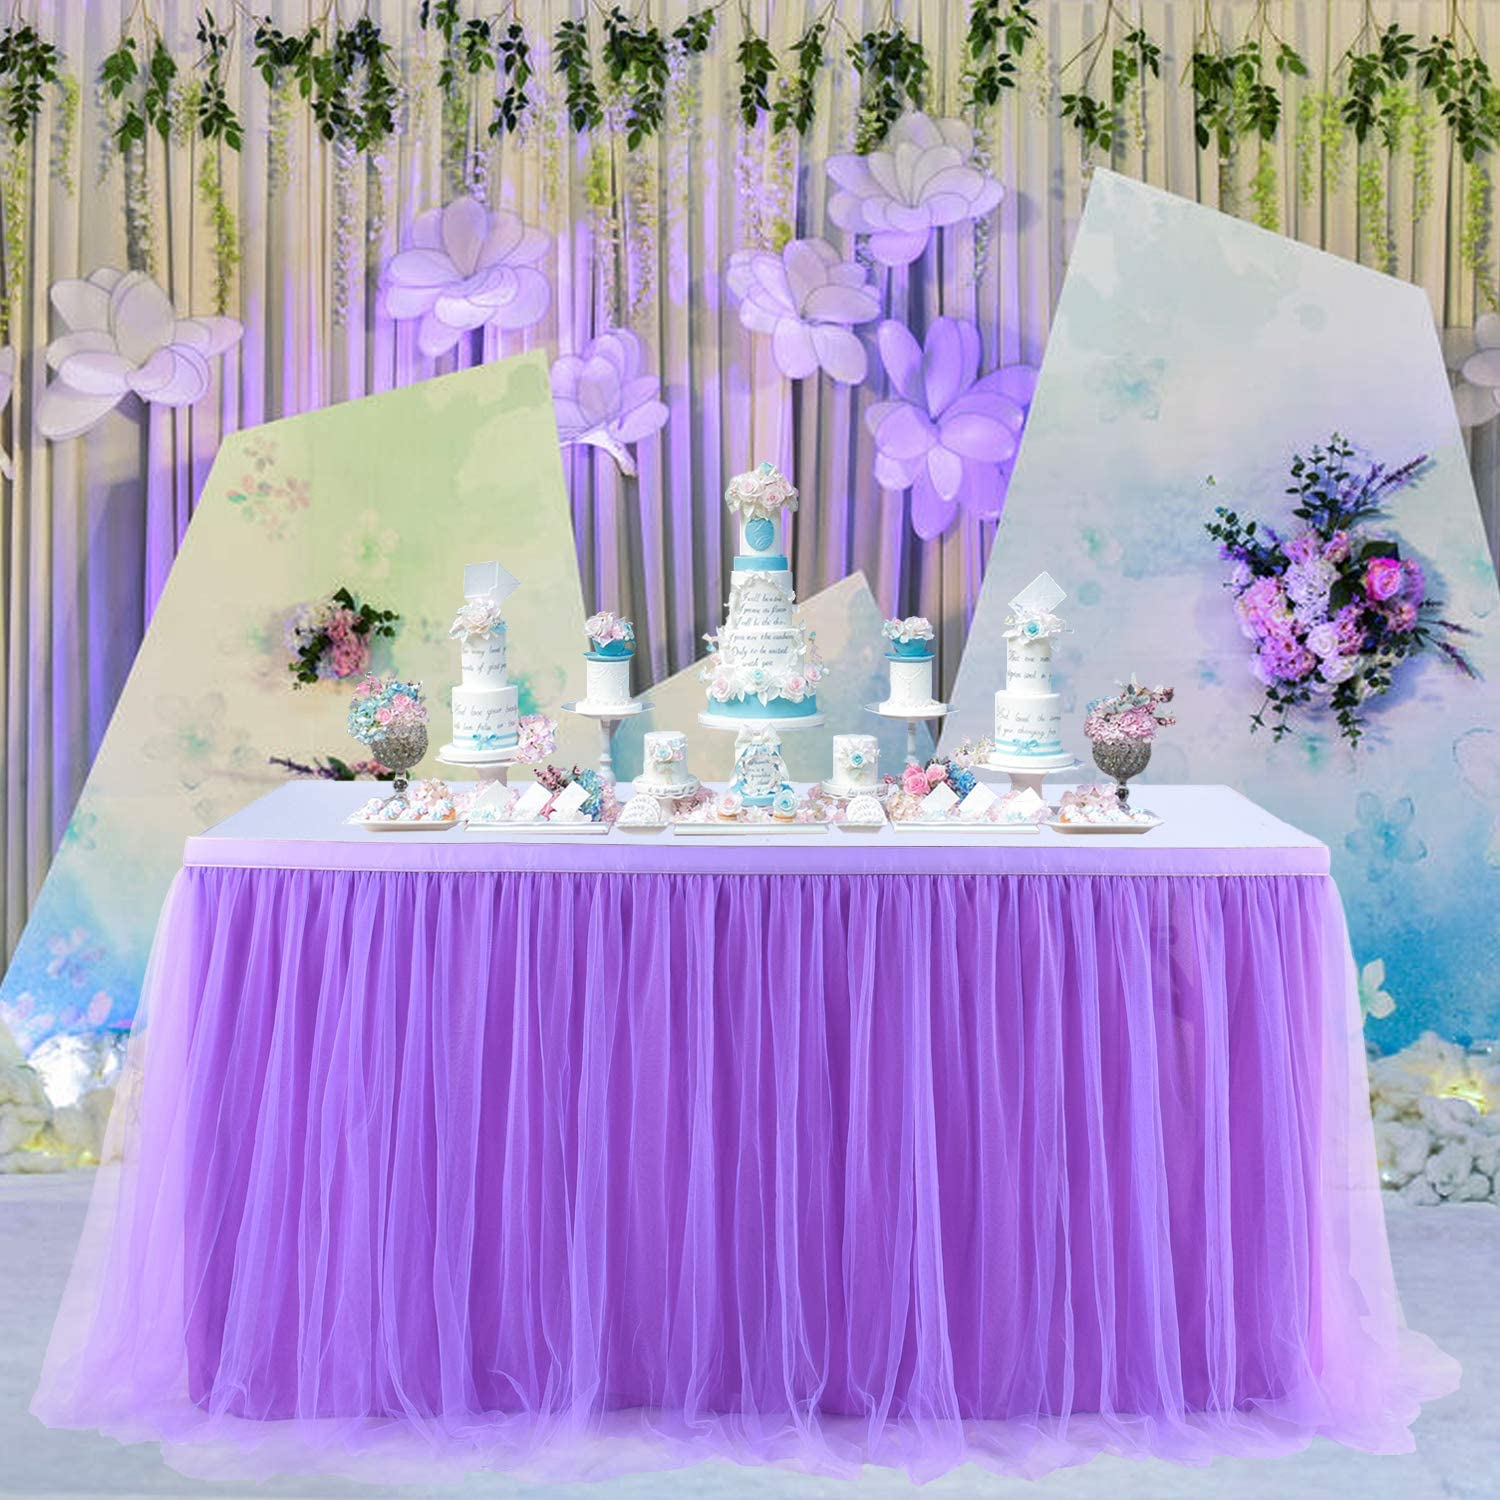 KIXIGO Tulle Table Skirt Tableware Table Cloth,Tutu Table Skirting for Party,Wedding,Birthday Party Home Decoration,High-end Gold Brim 3 Layer Mesh Fluffy (Purple, L 6(ft) H 30in)